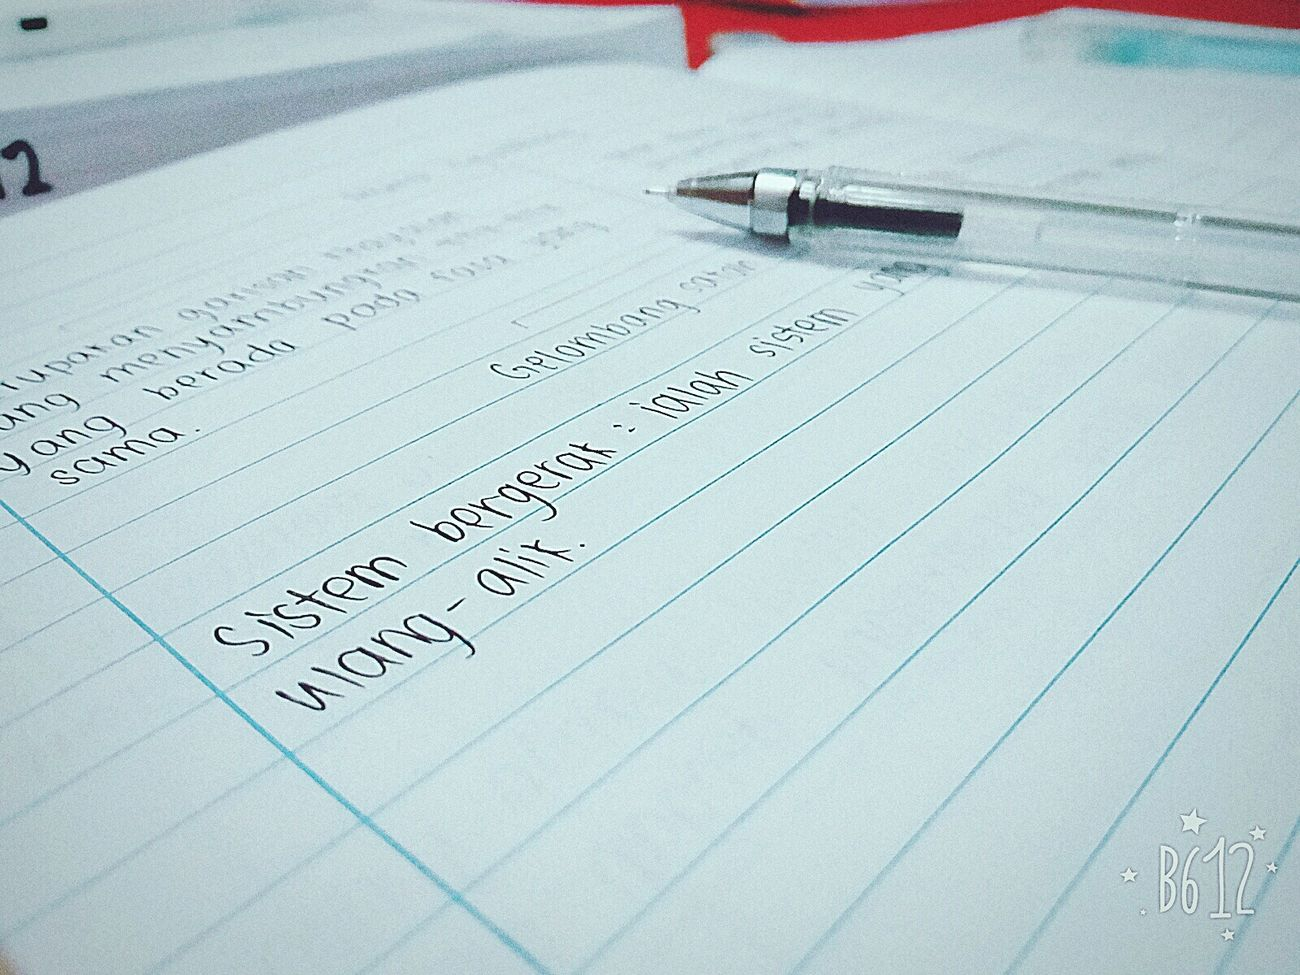 Paper Text Paperwork Handwriting  Indoors  Day Tired